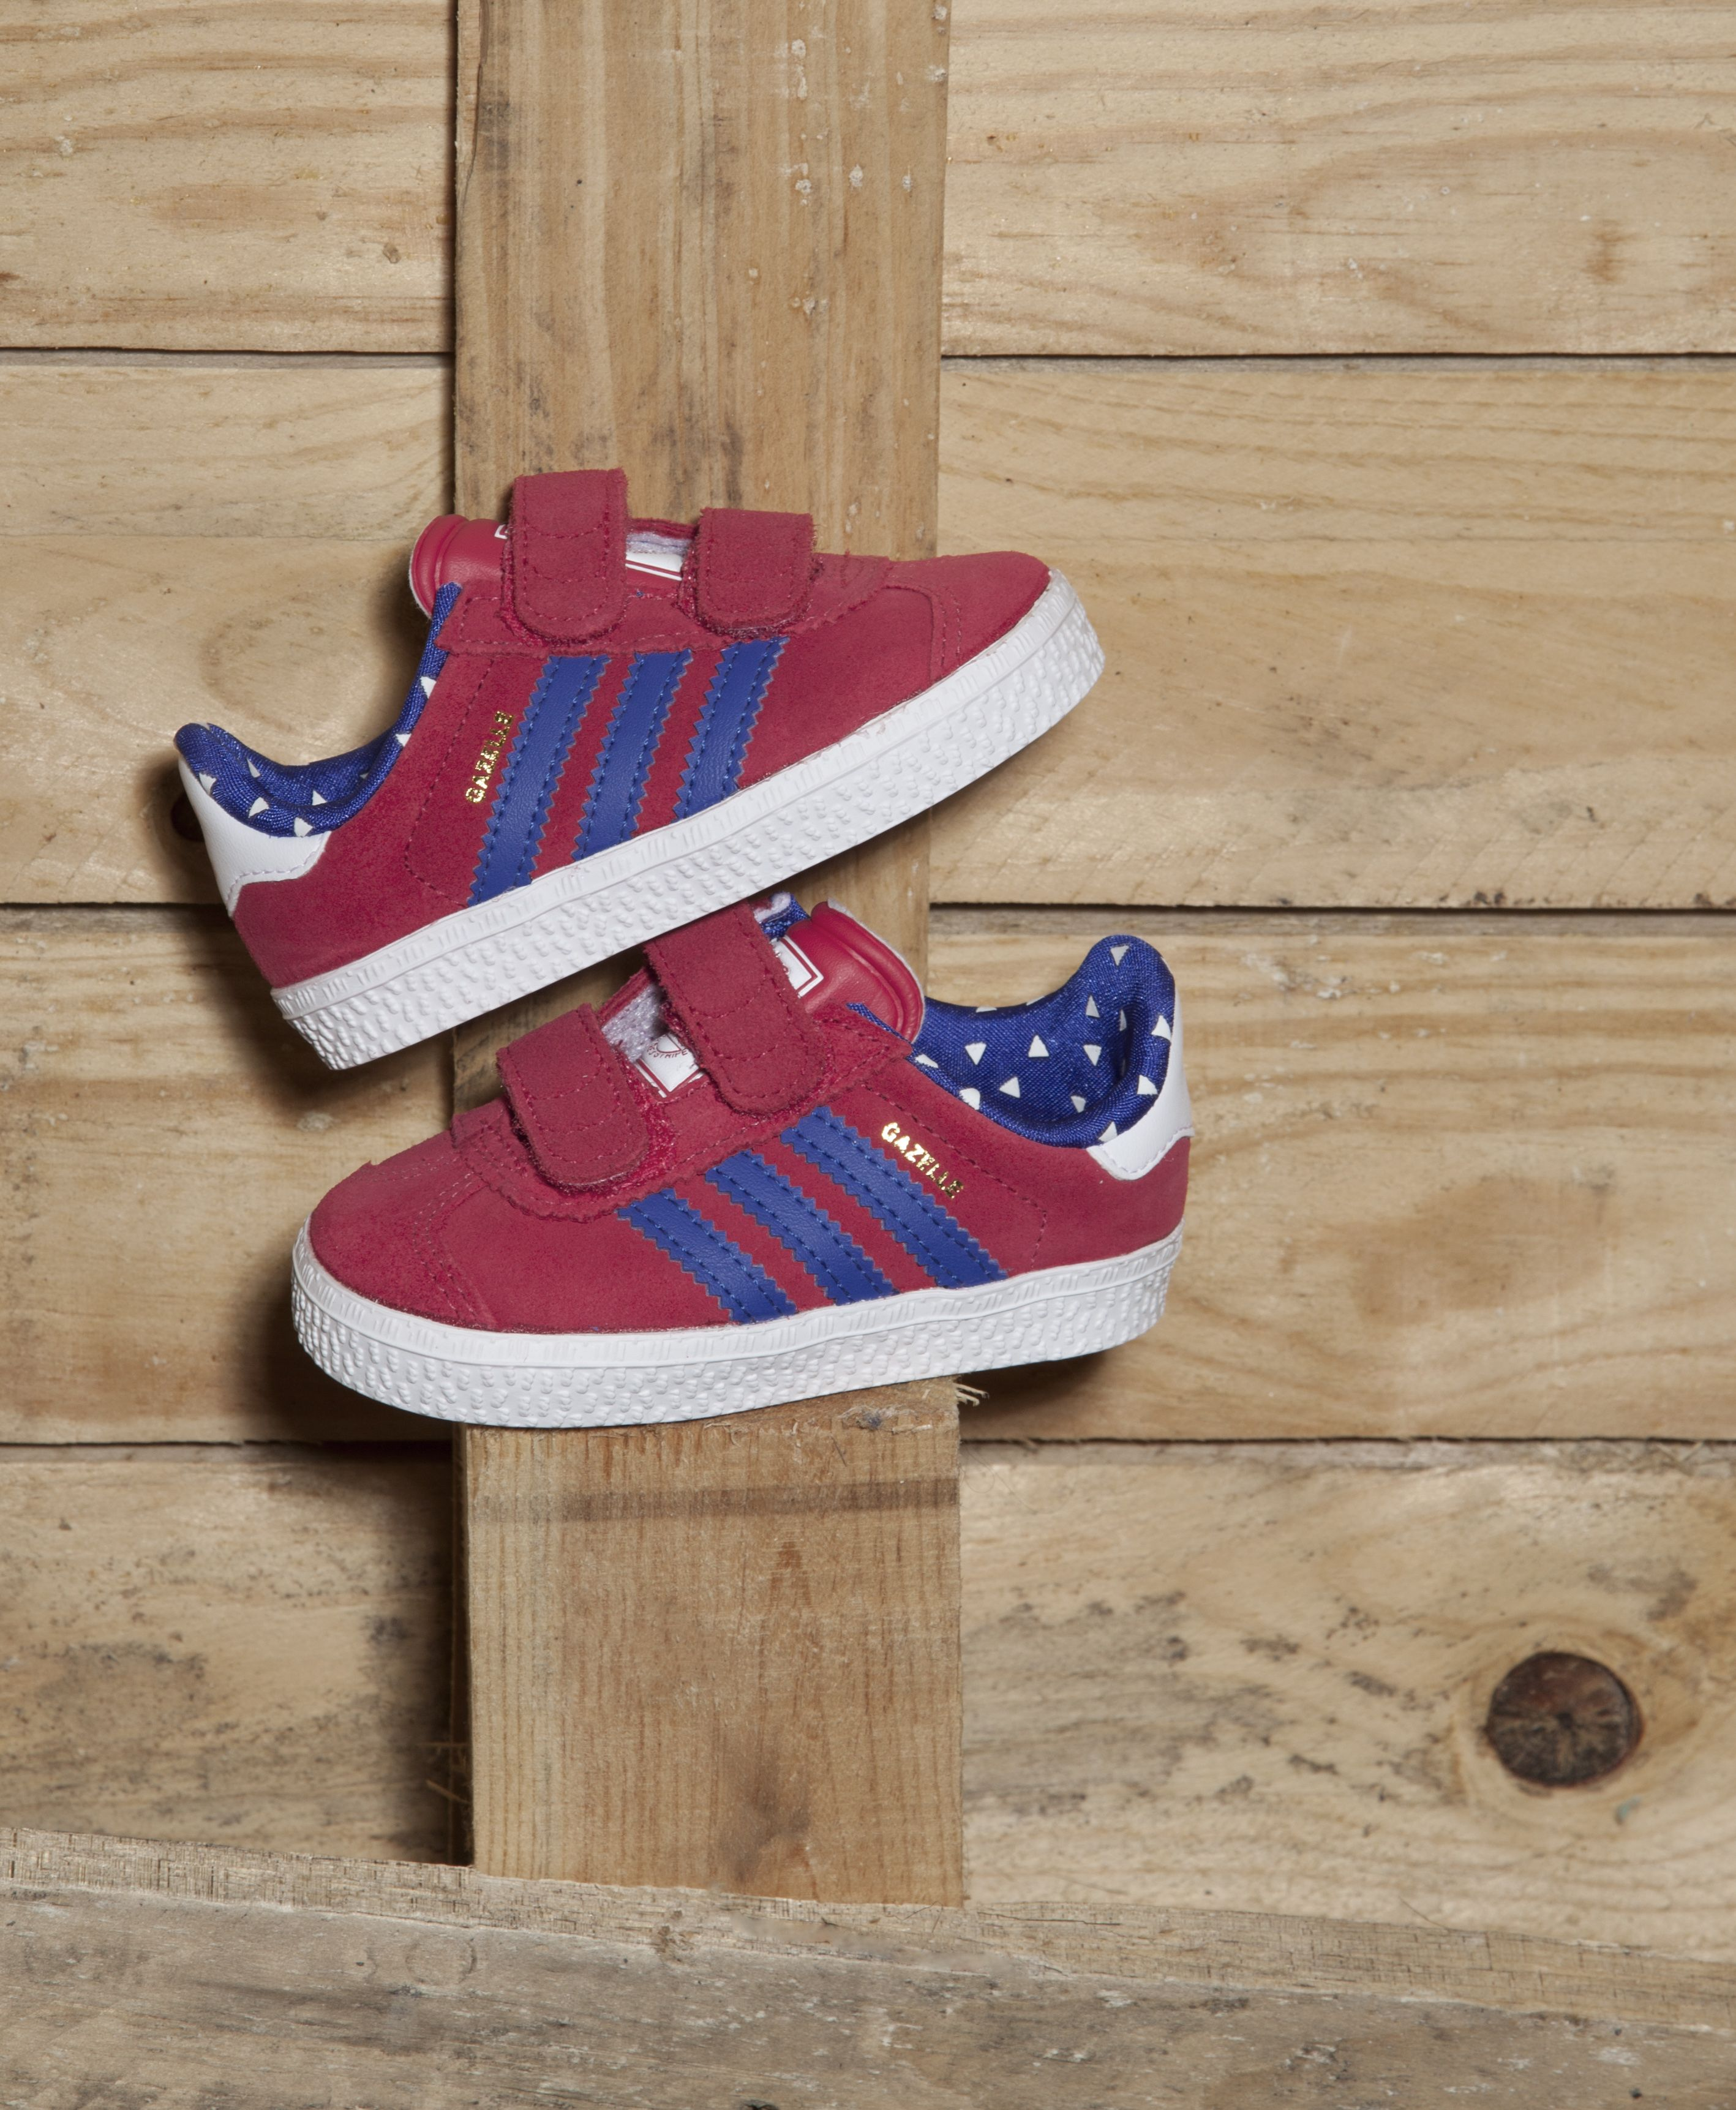 on sale 3fd95 6a086 The Adidas Gazelle 2 in punchy pink would be a great addition